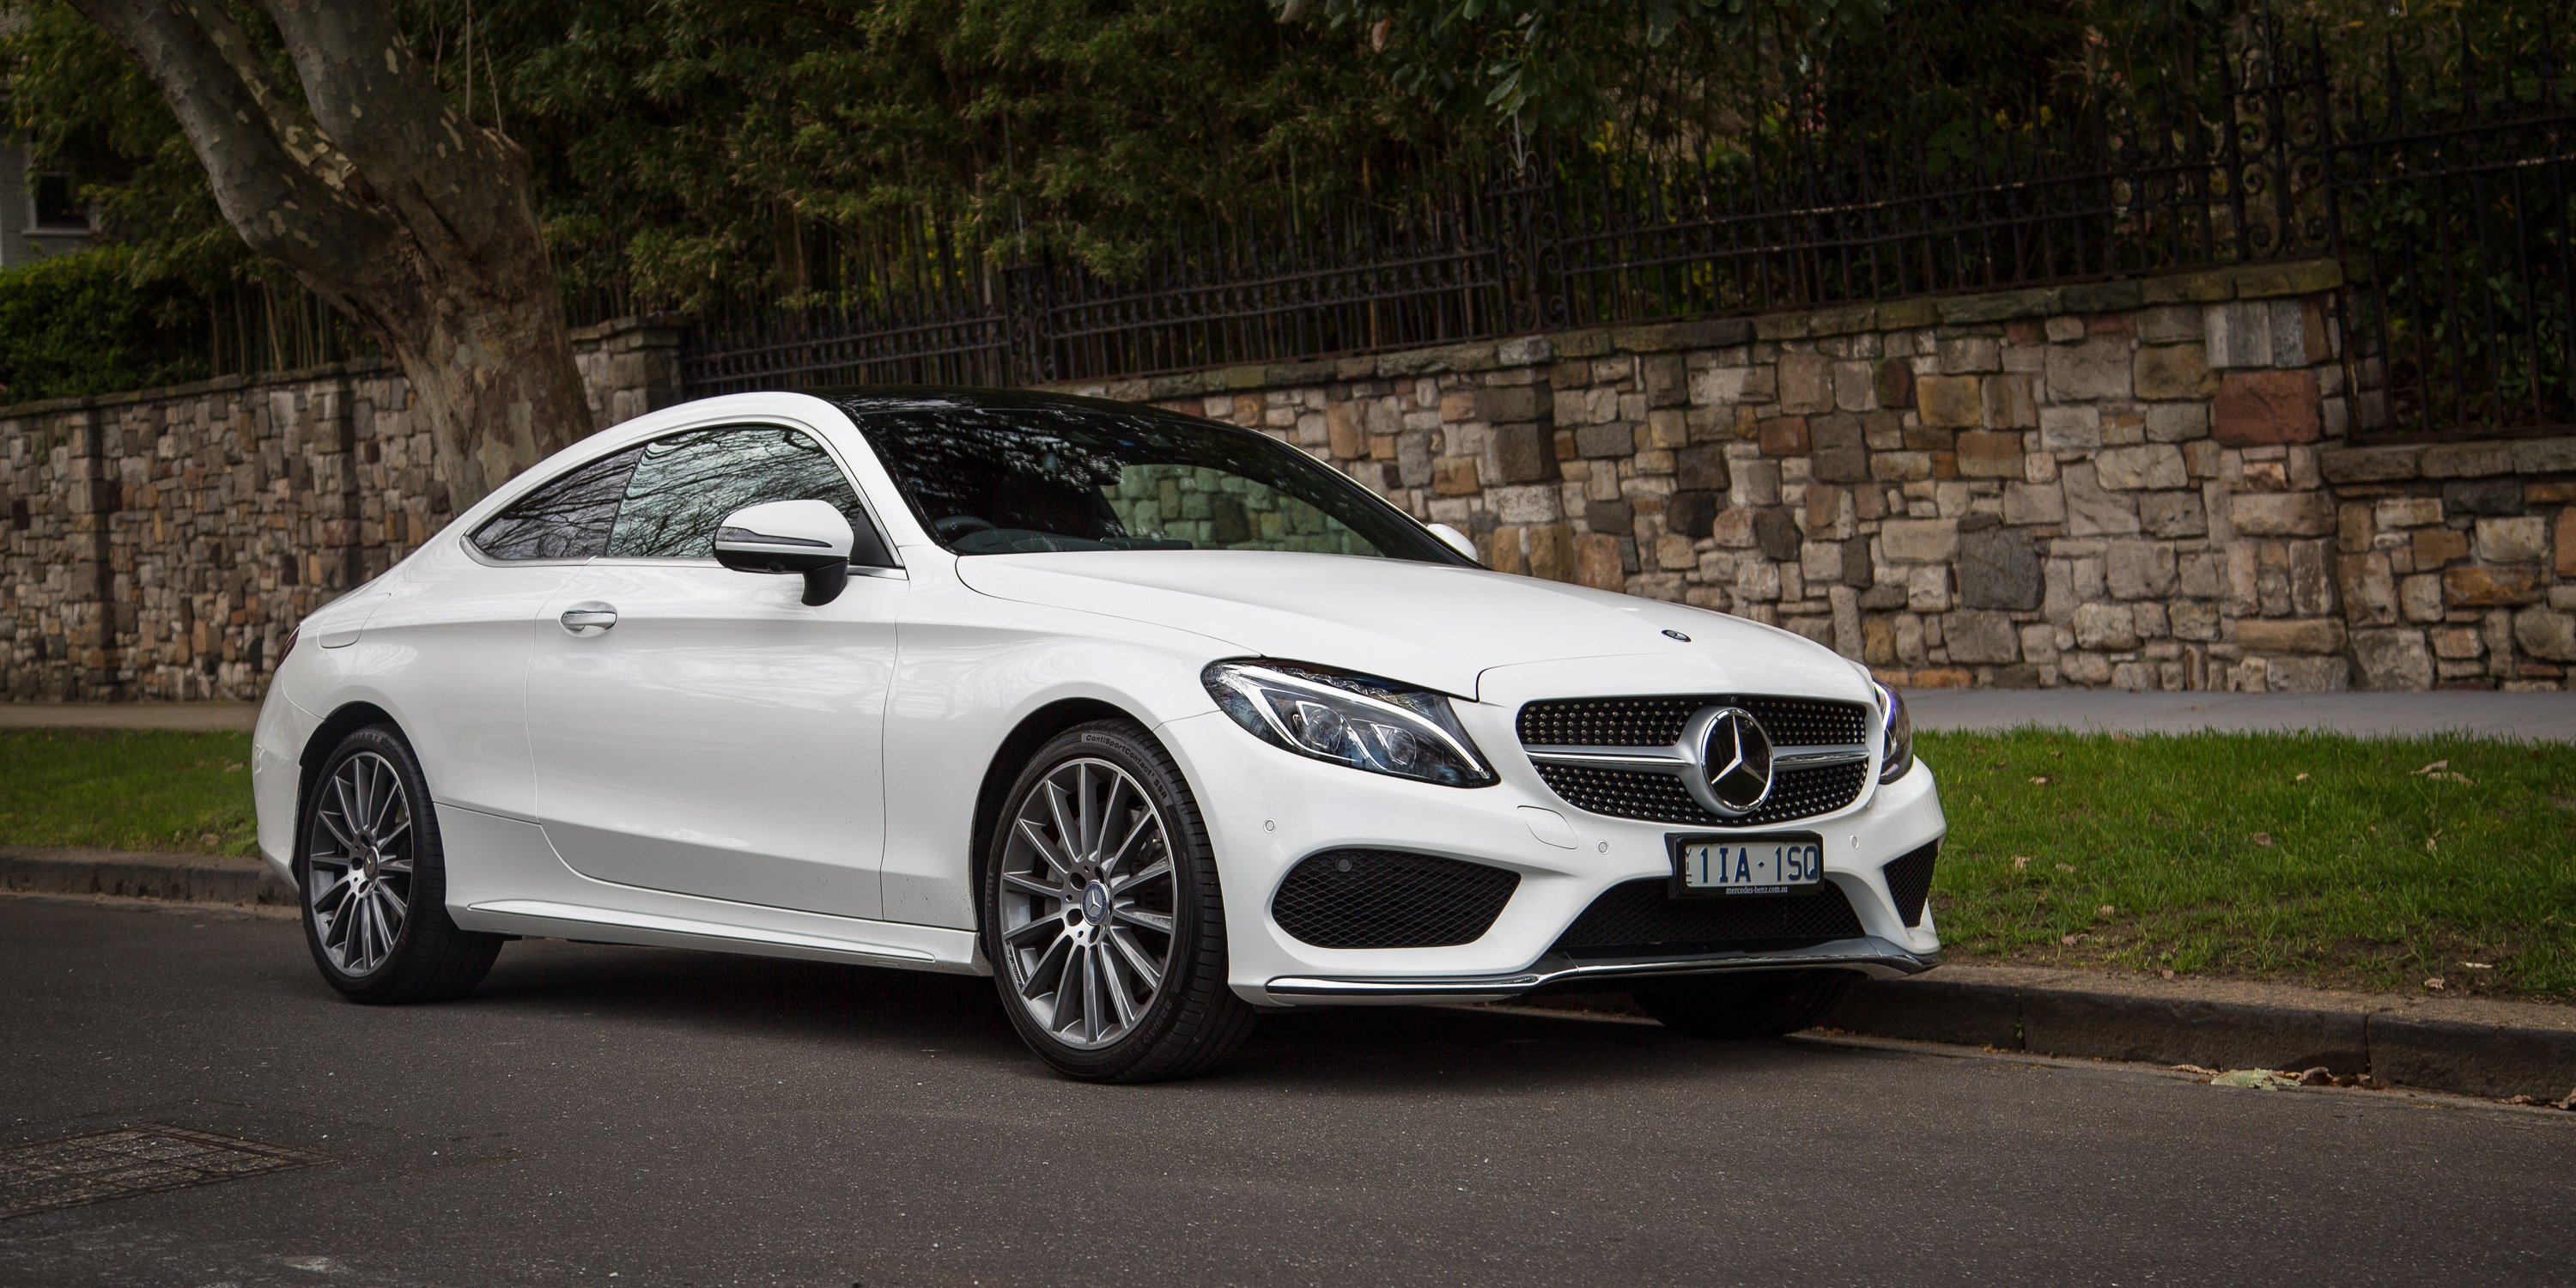 2016 mercedes benz c300 coupe long term report three for Mercedes benz 300